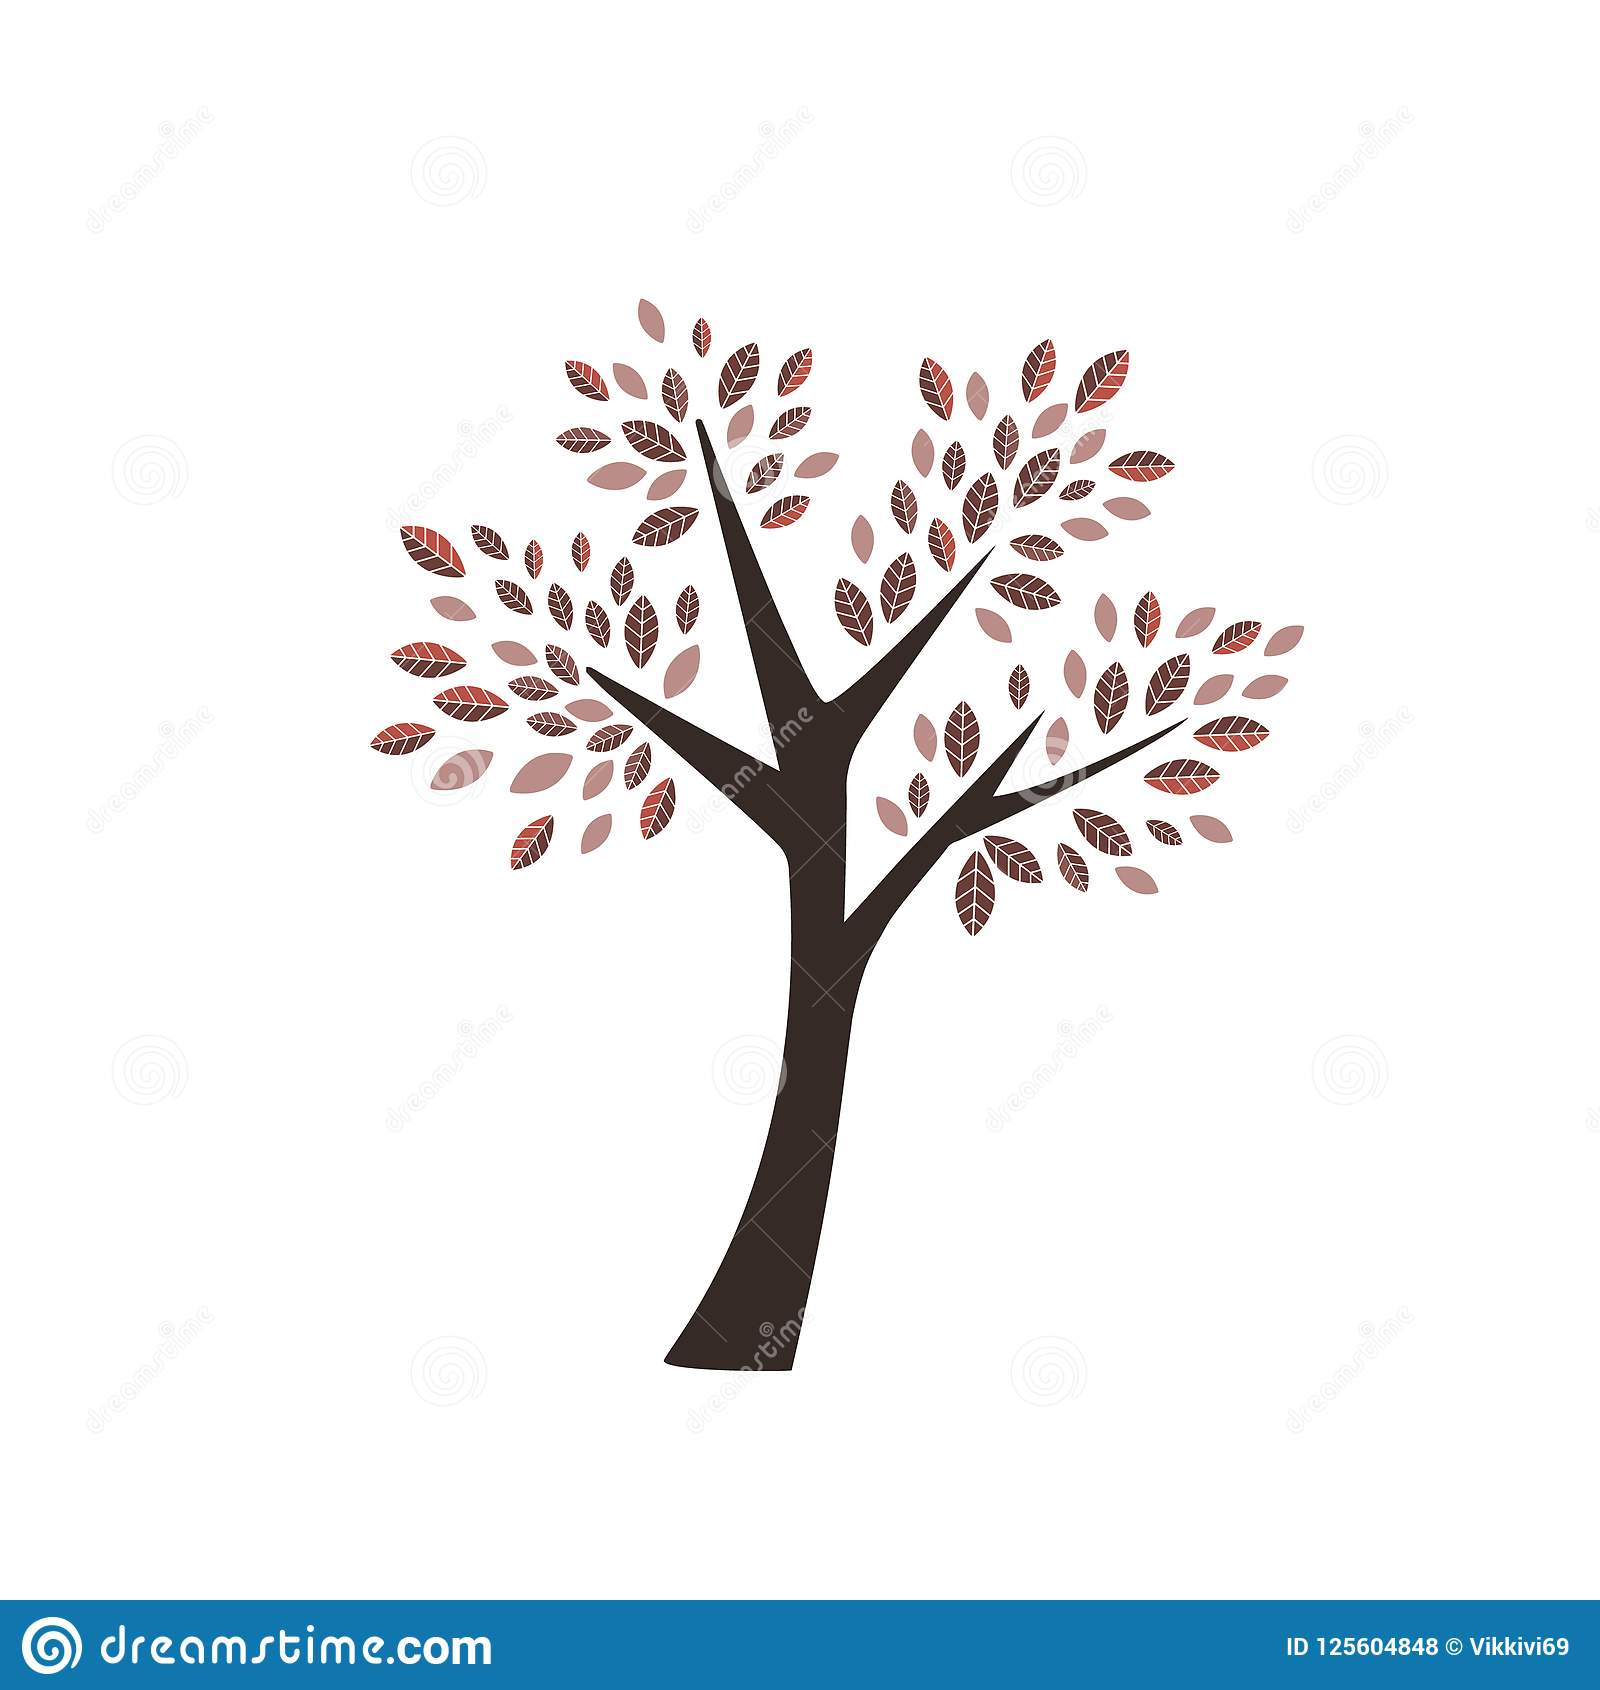 Vector autumn tree with dark and light red orange leaves with brown trunk icon icon logo forest plant on white background